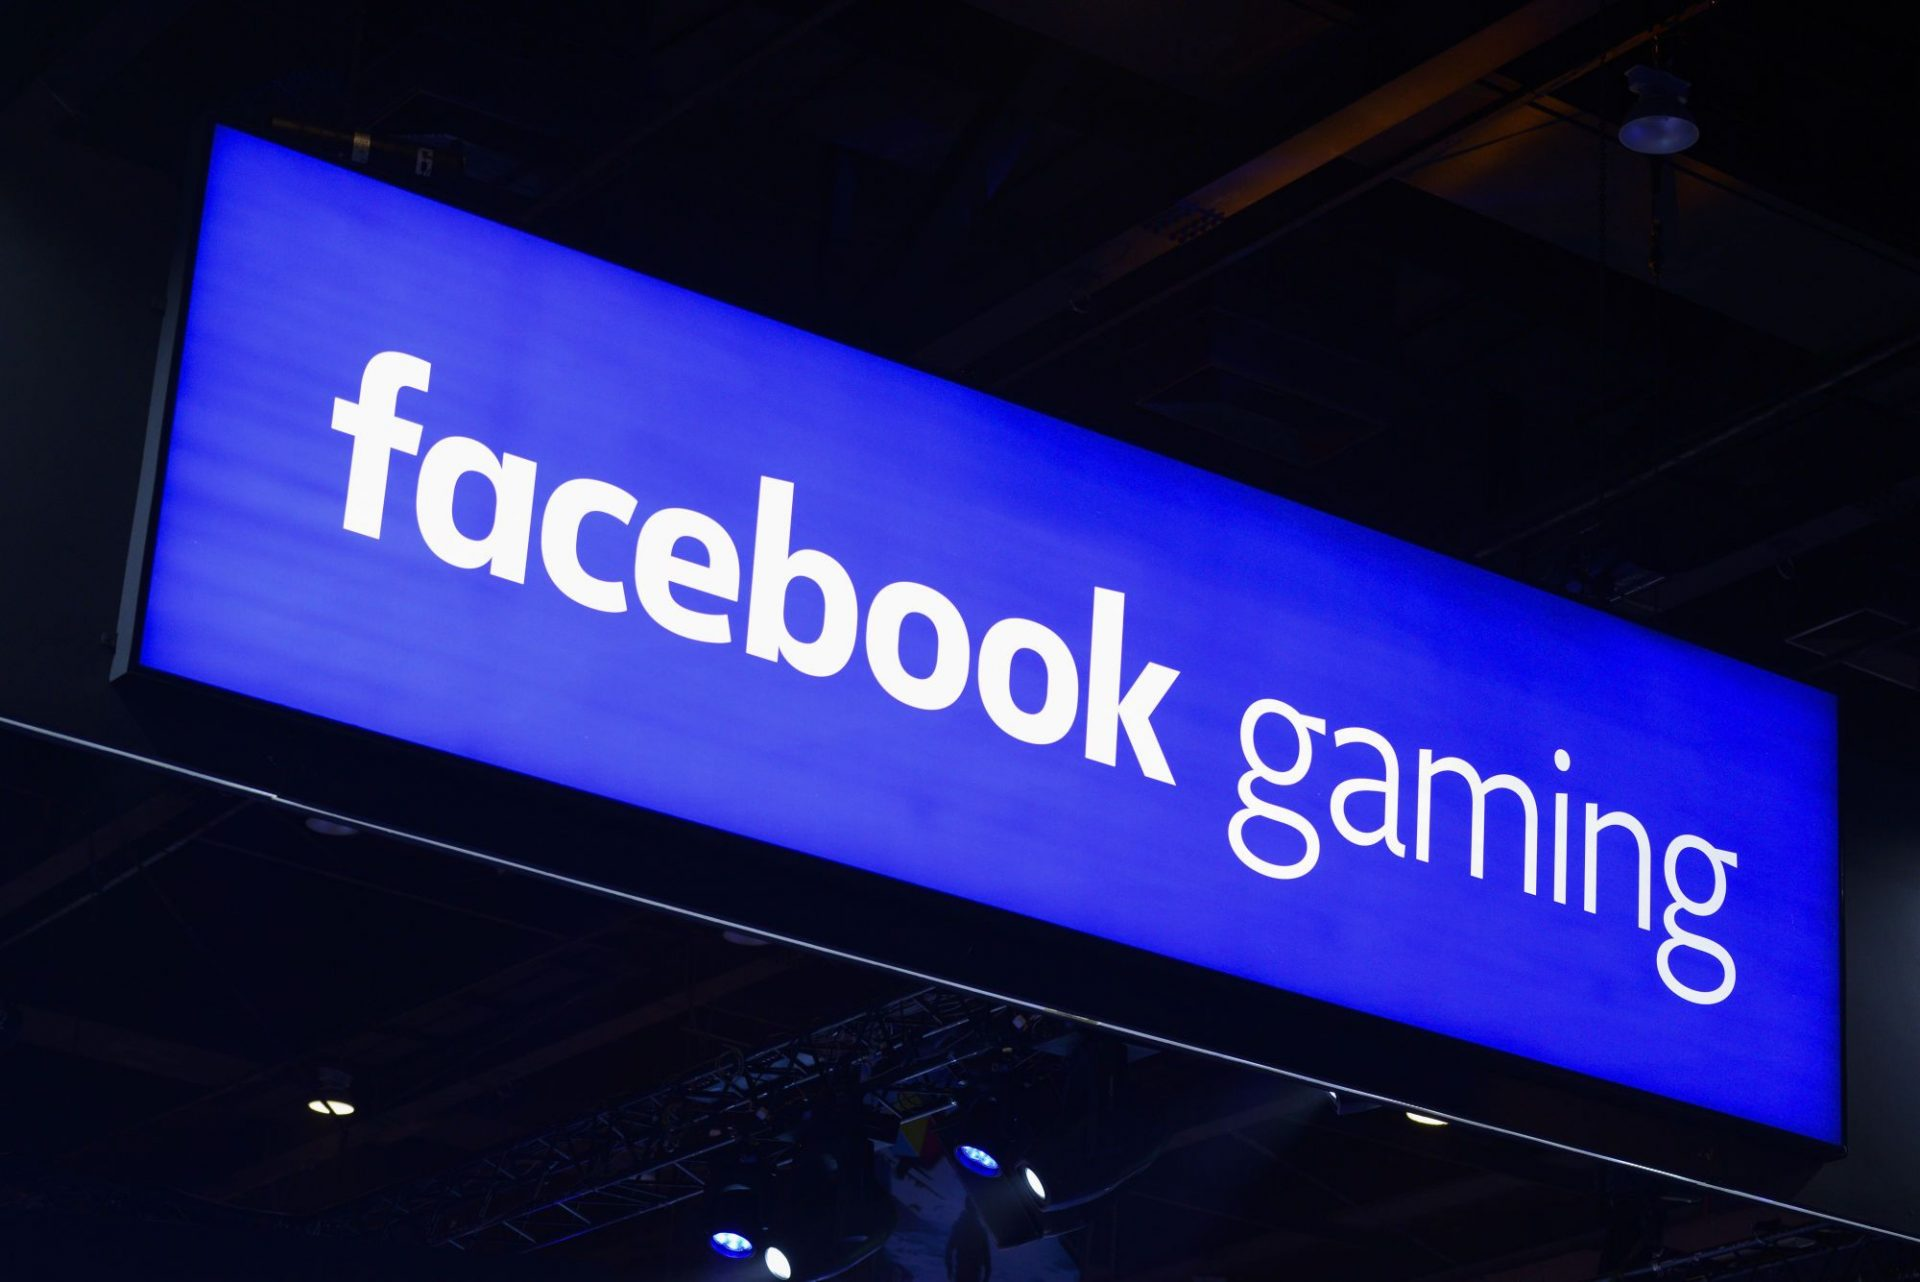 Facebook intră pe piața de gaming: o nouă aplicație va face competiție Twitch și YouTube